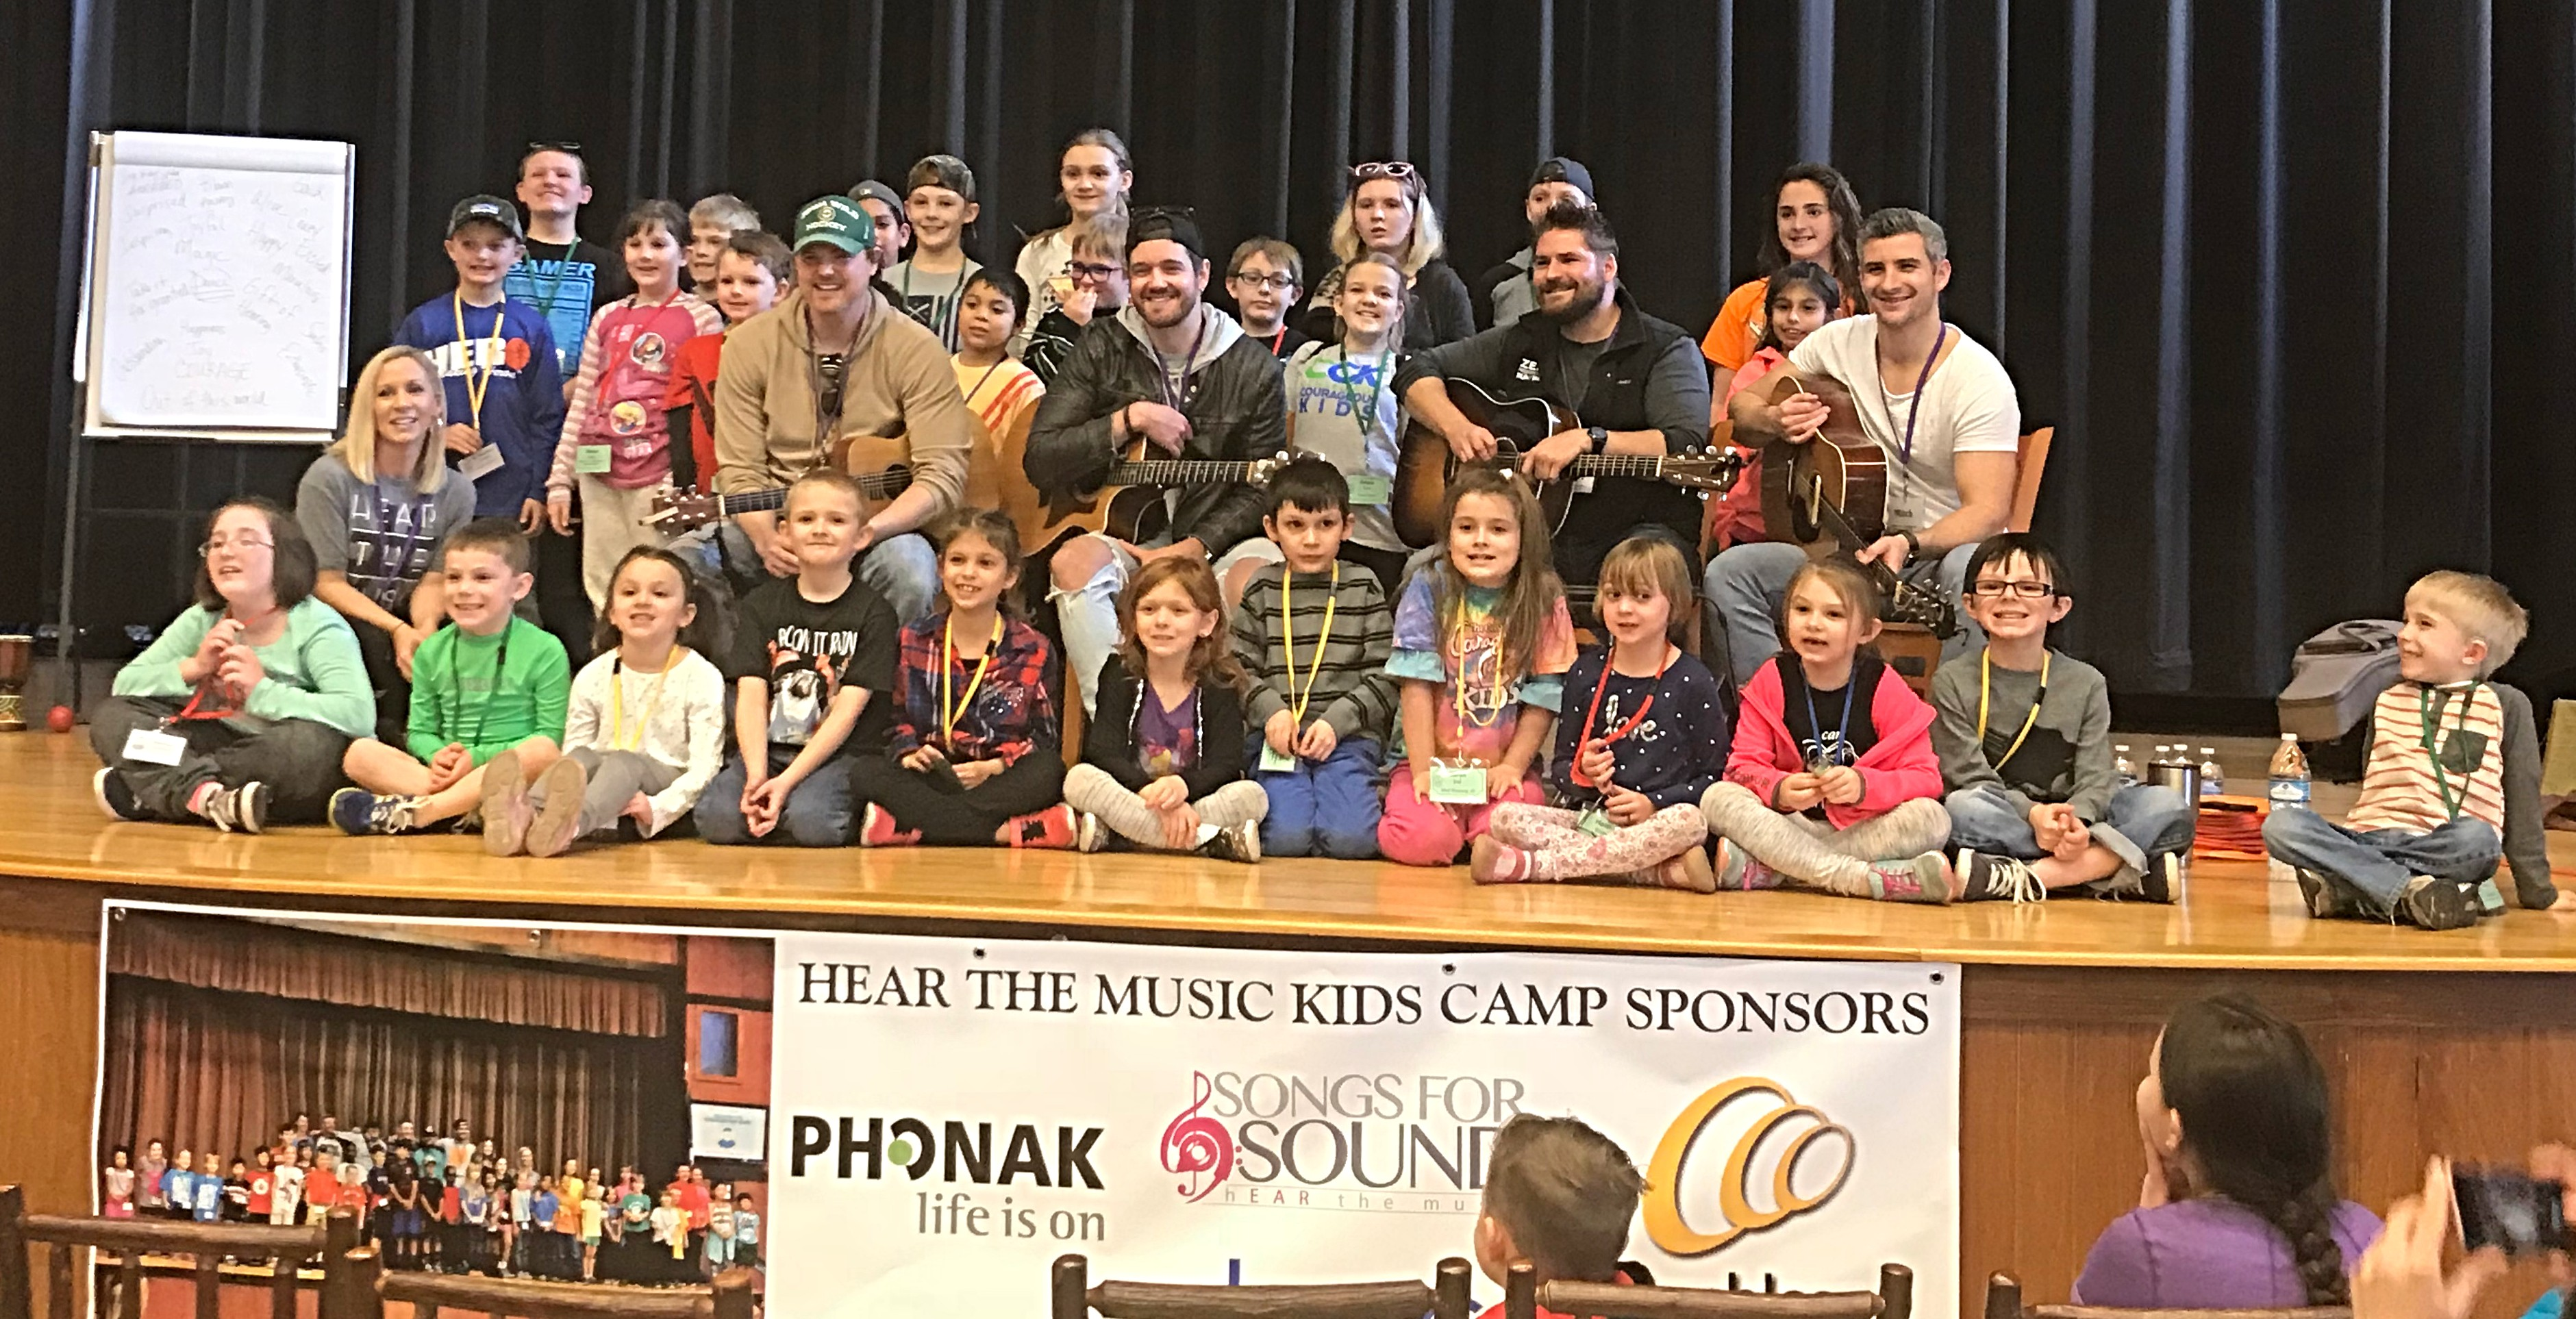 Register for the Hear the Music Kids Camp